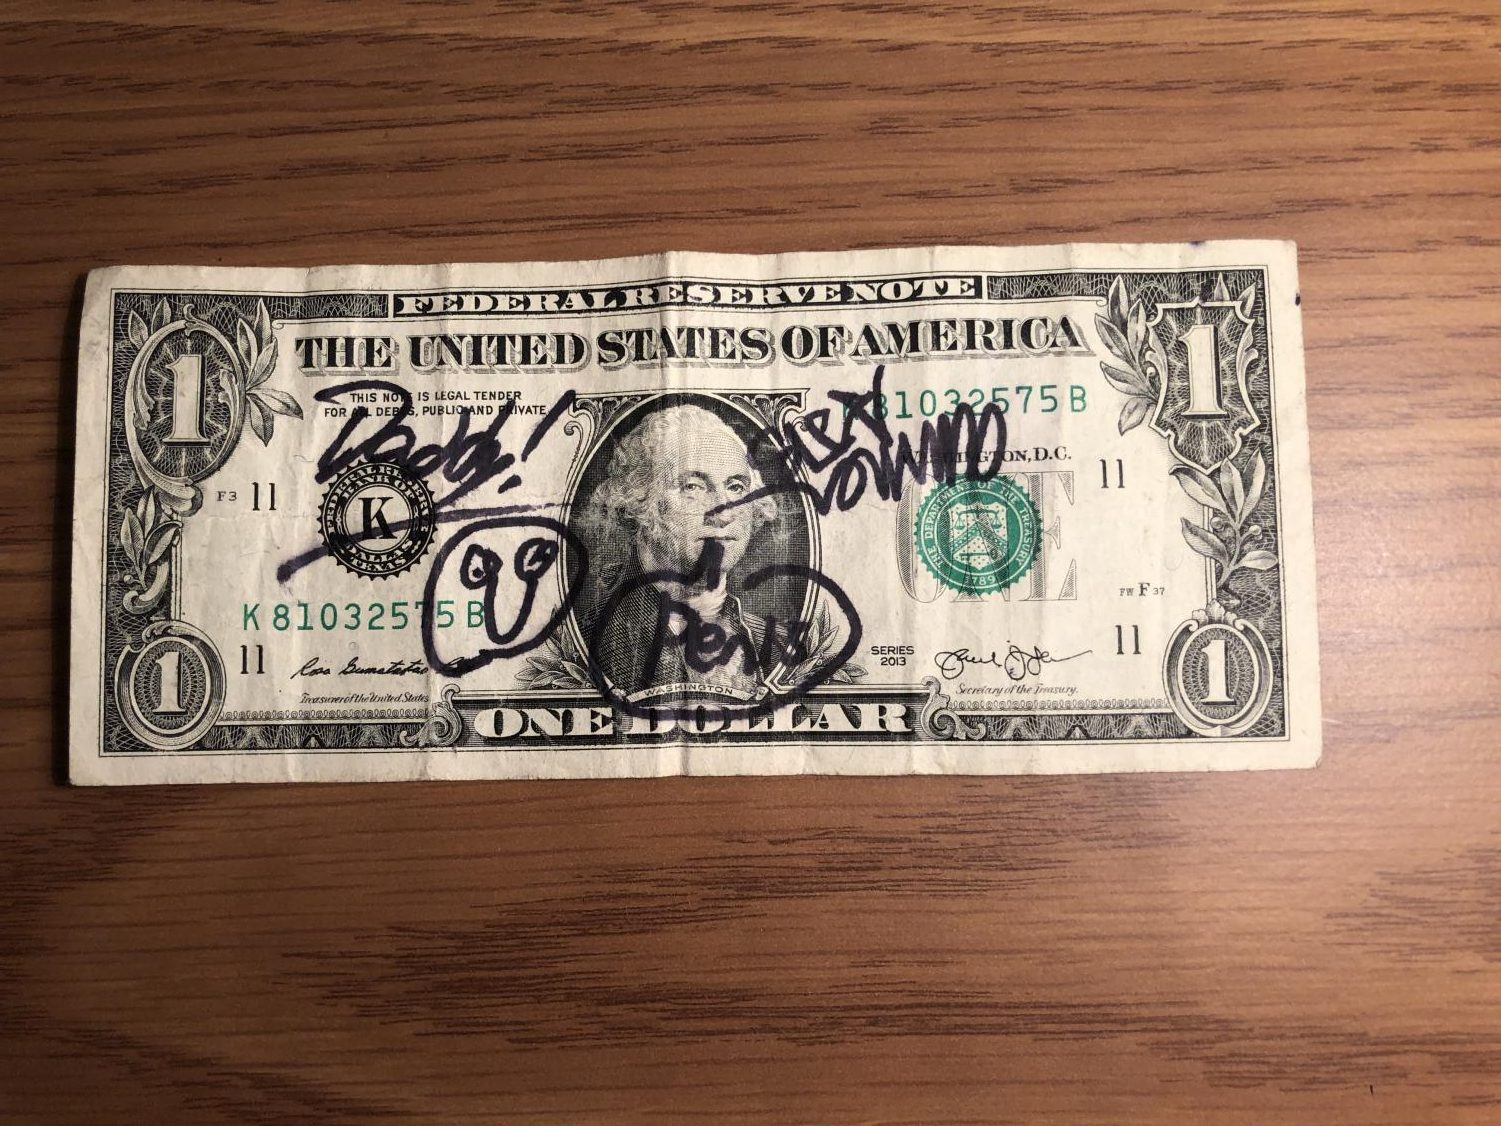 The one-dollar bill, as received from the McDonald's. There are no new alterations to the dollar since the reception of the dollar.